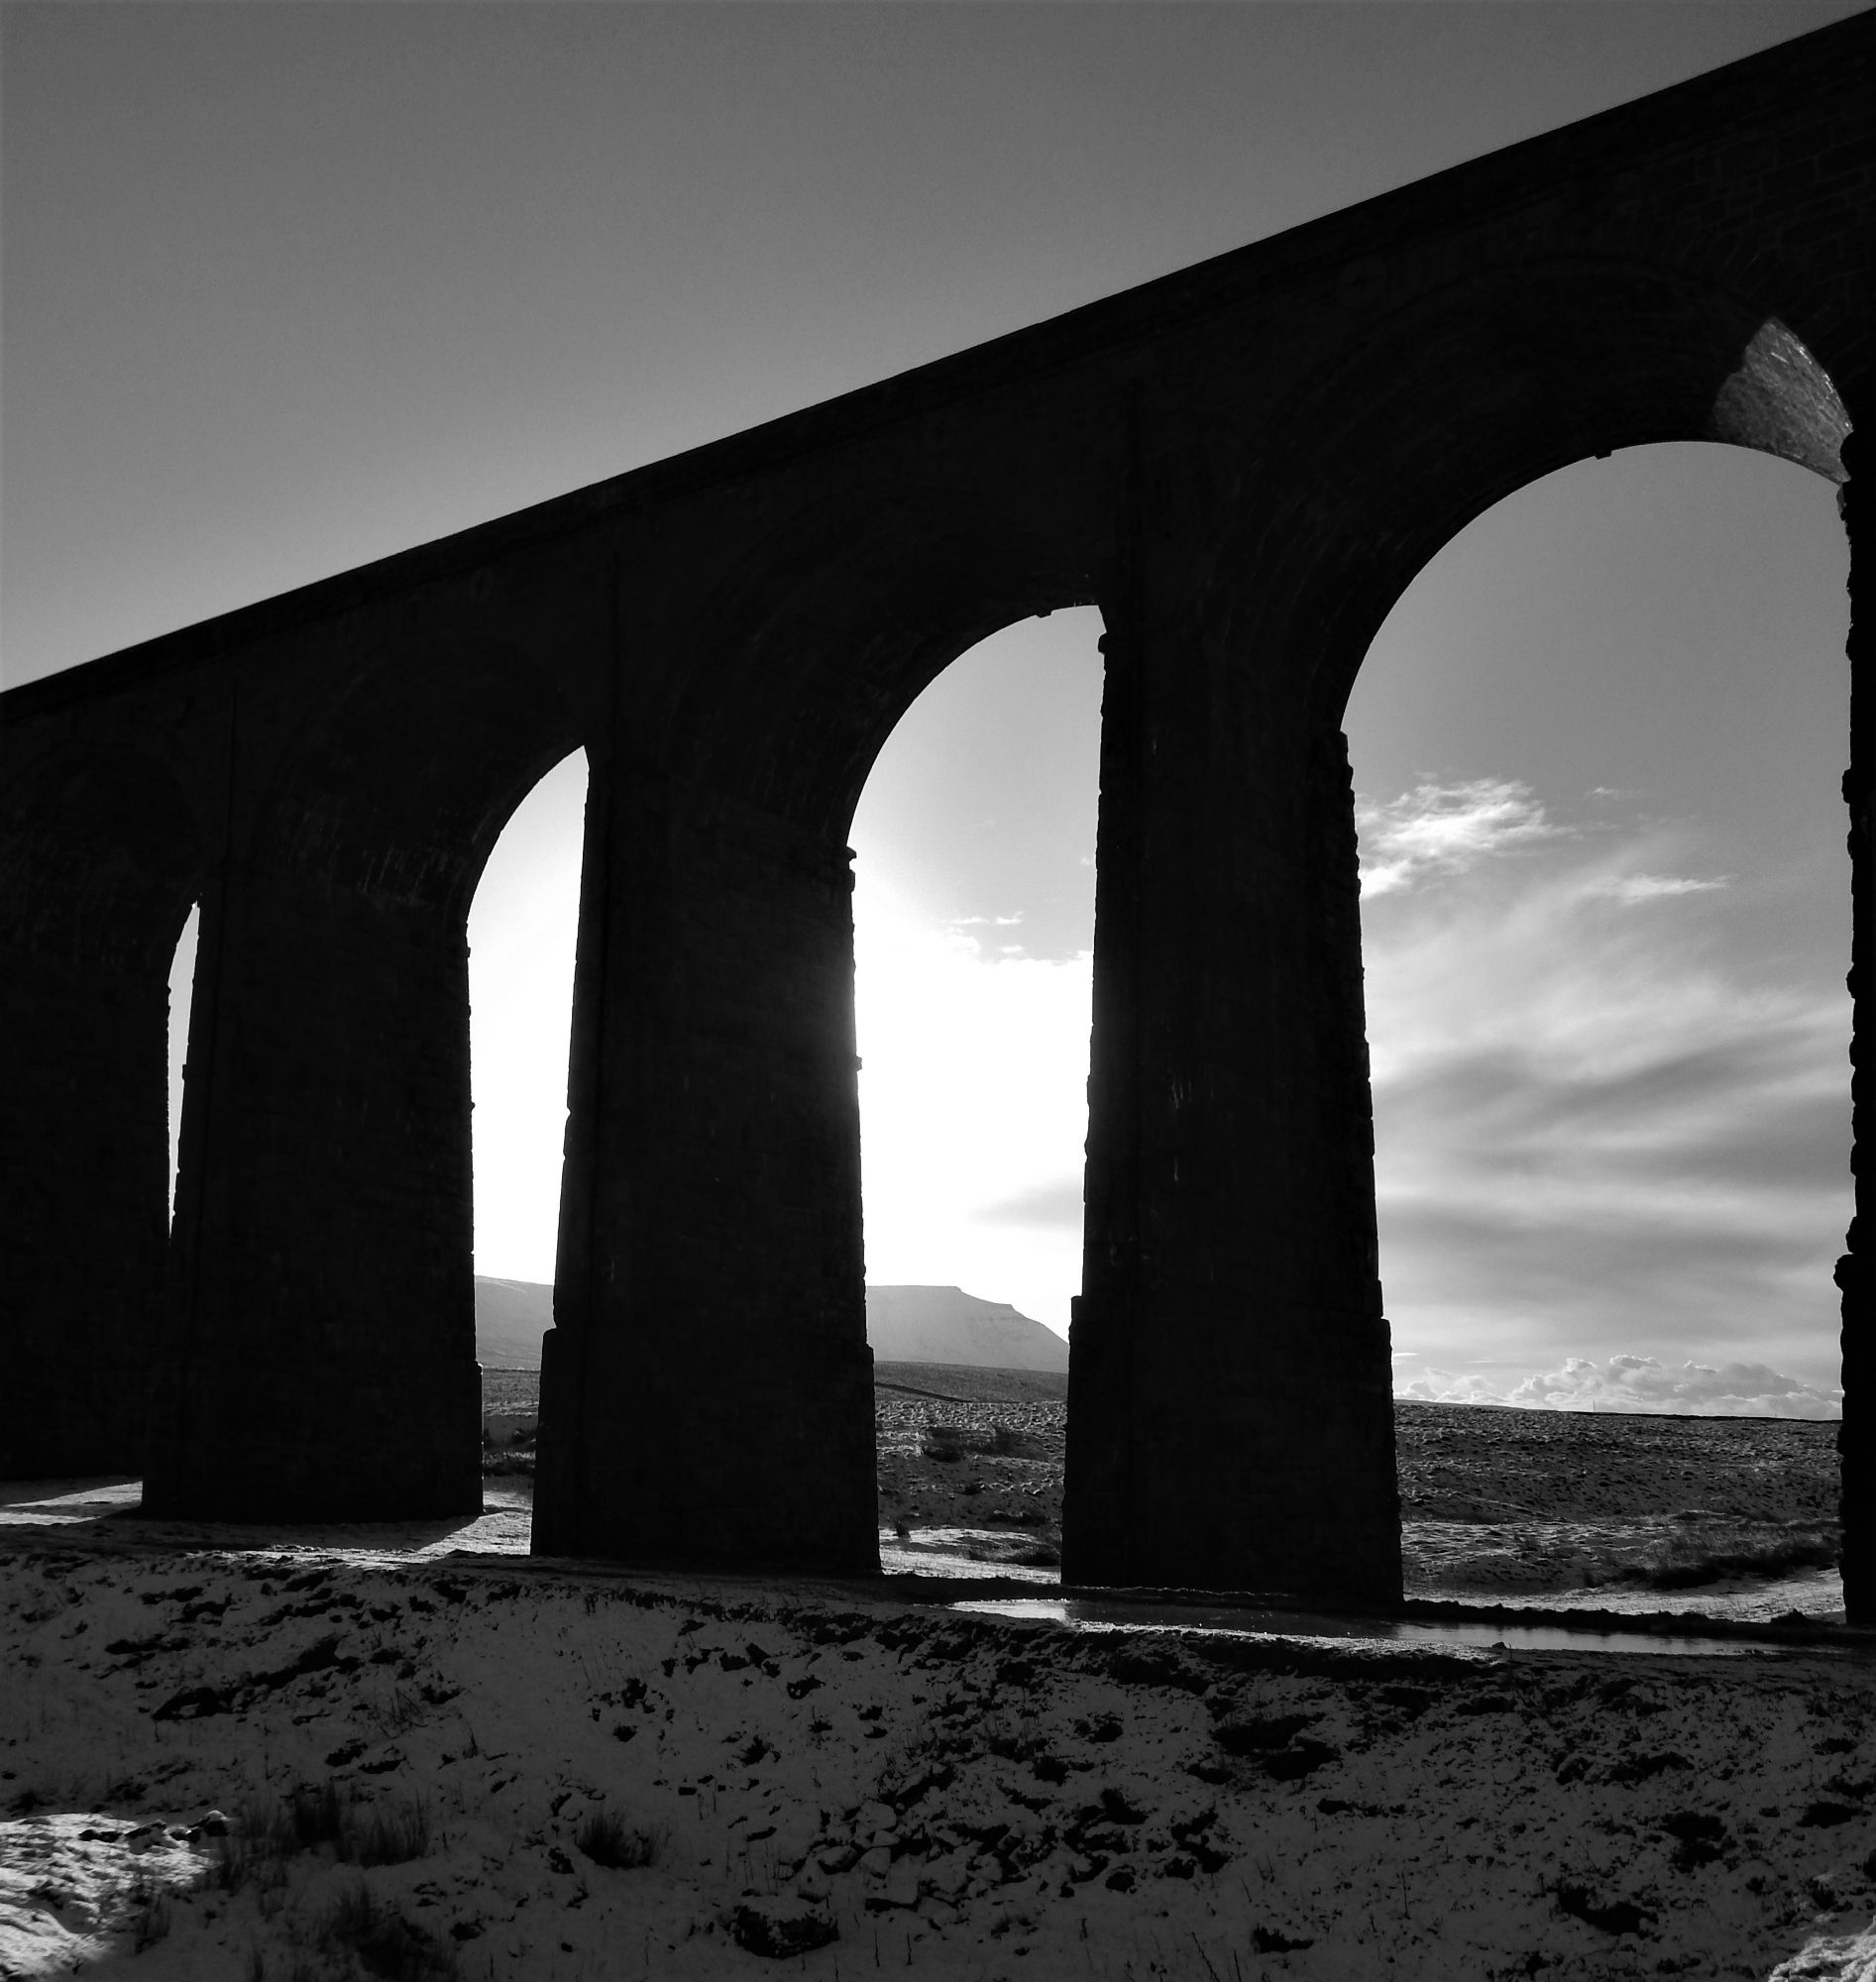 Ribblehead Viaduct and a glimpse of Ingleborough